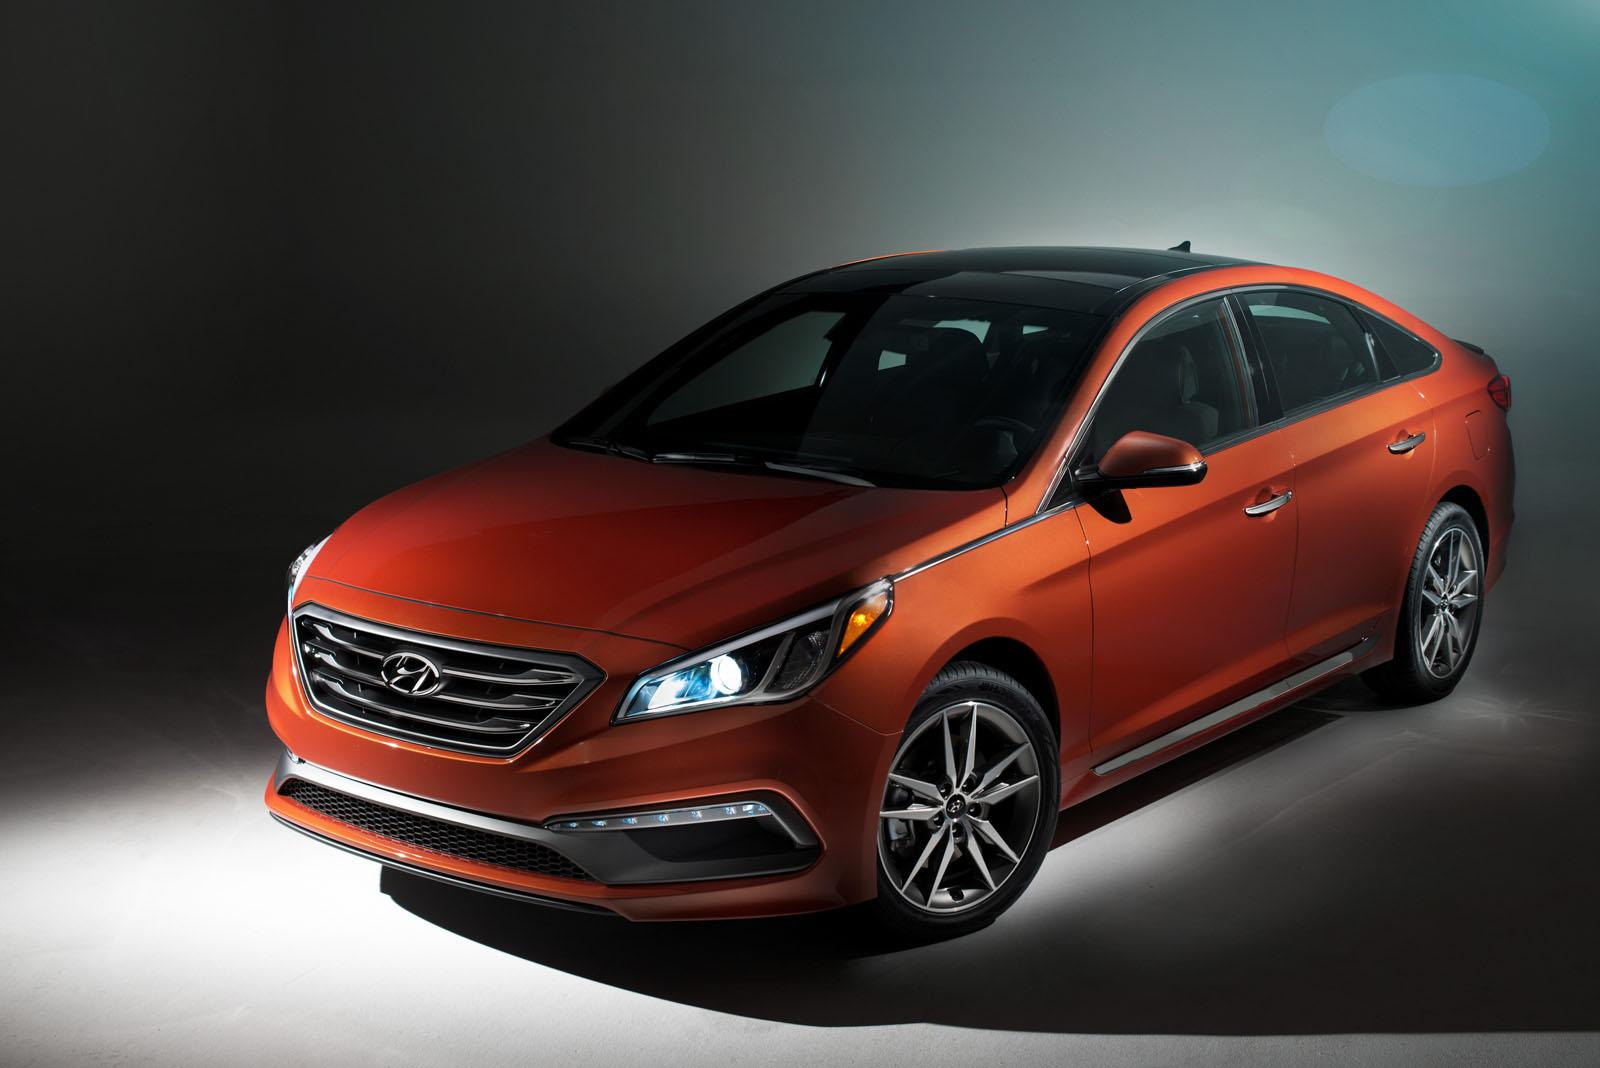 2015 Hyundai Sonata Is Competitive Mid Size Sedan Cr